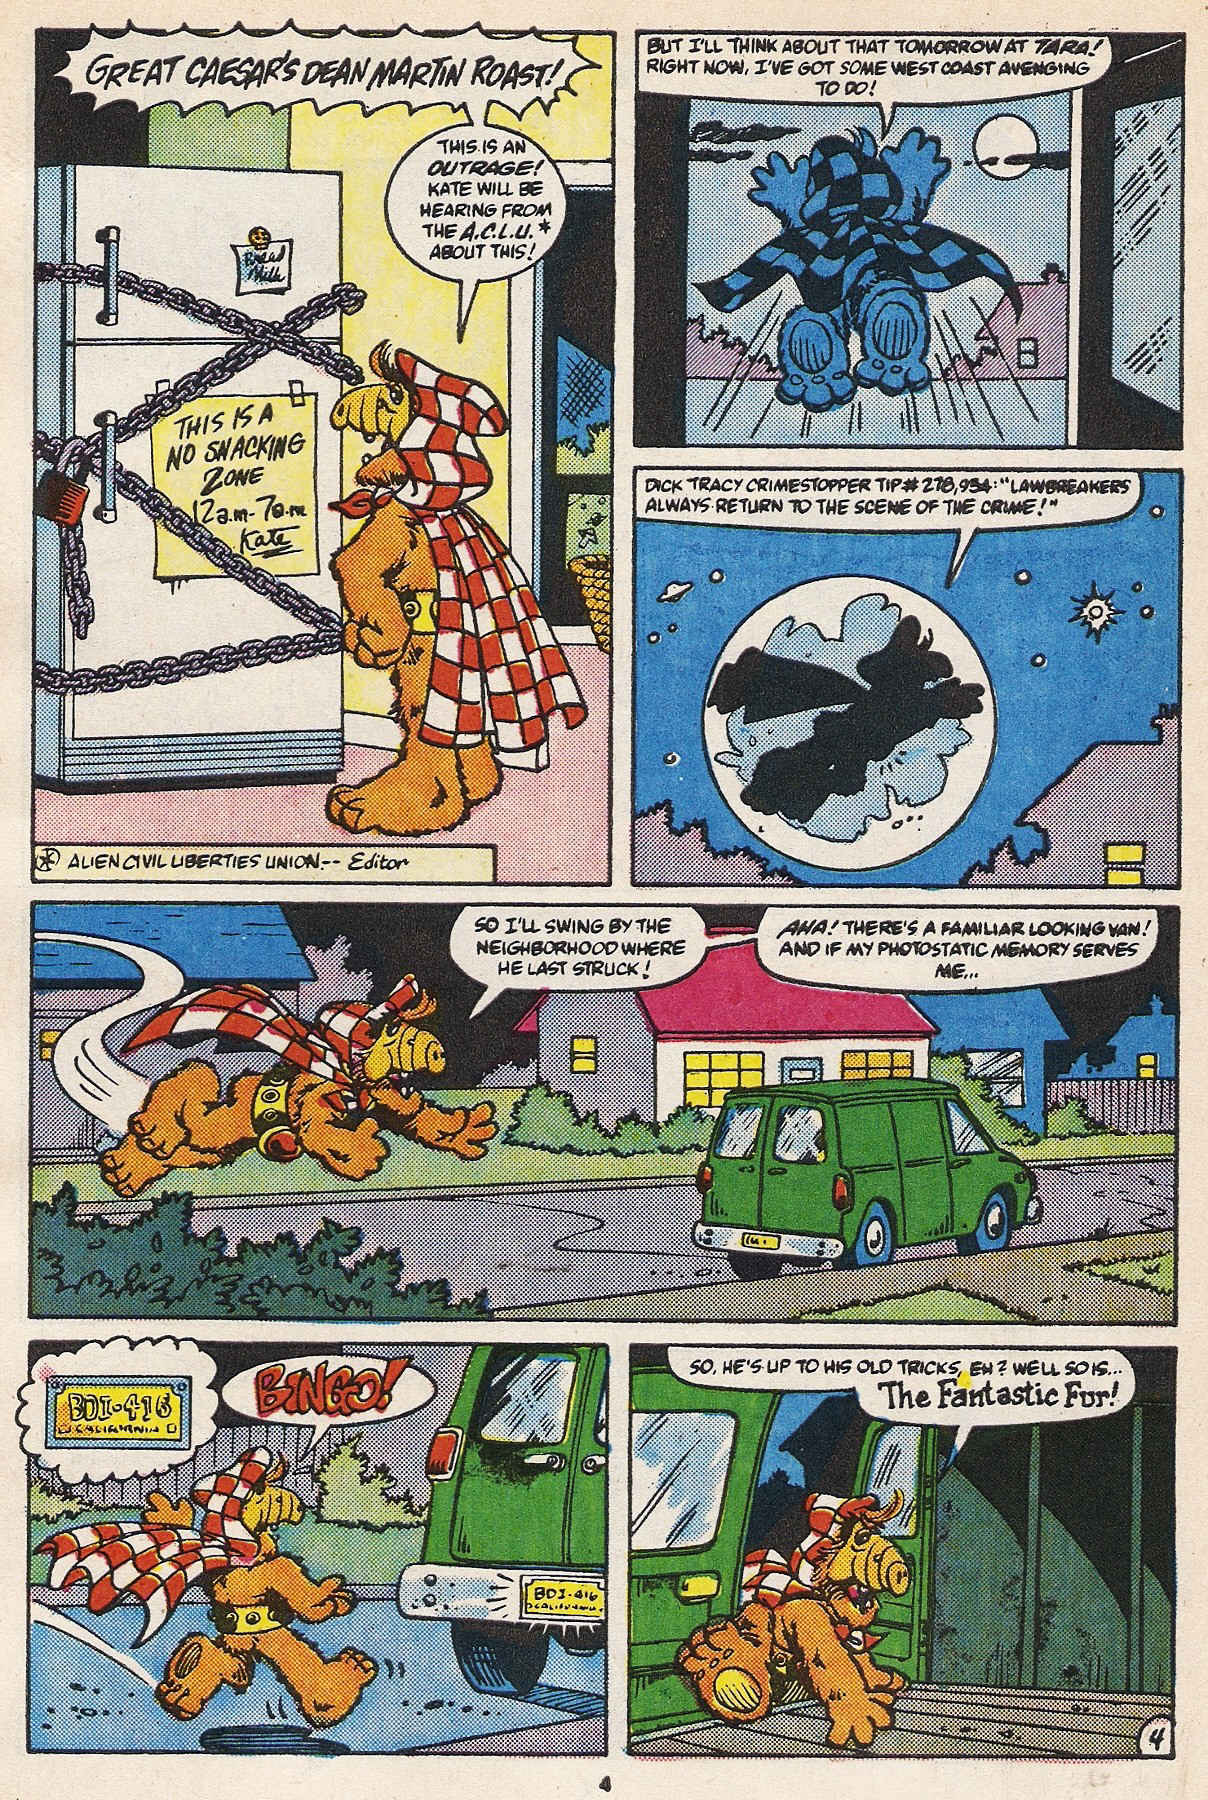 Read online ALF comic -  Issue #16 - 6